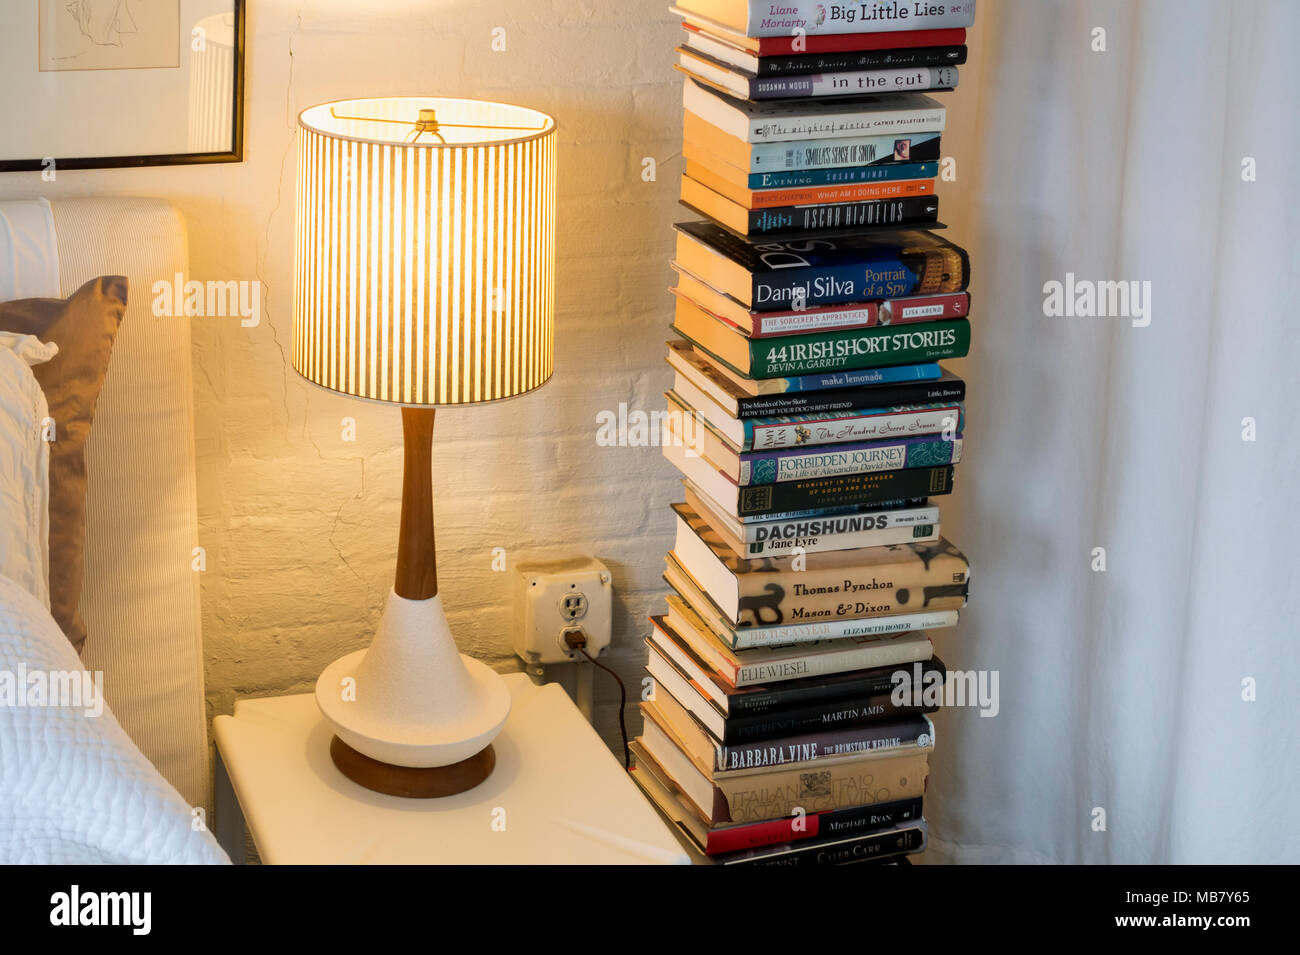 lighted-reading-lamp-and-a-stack-of-book